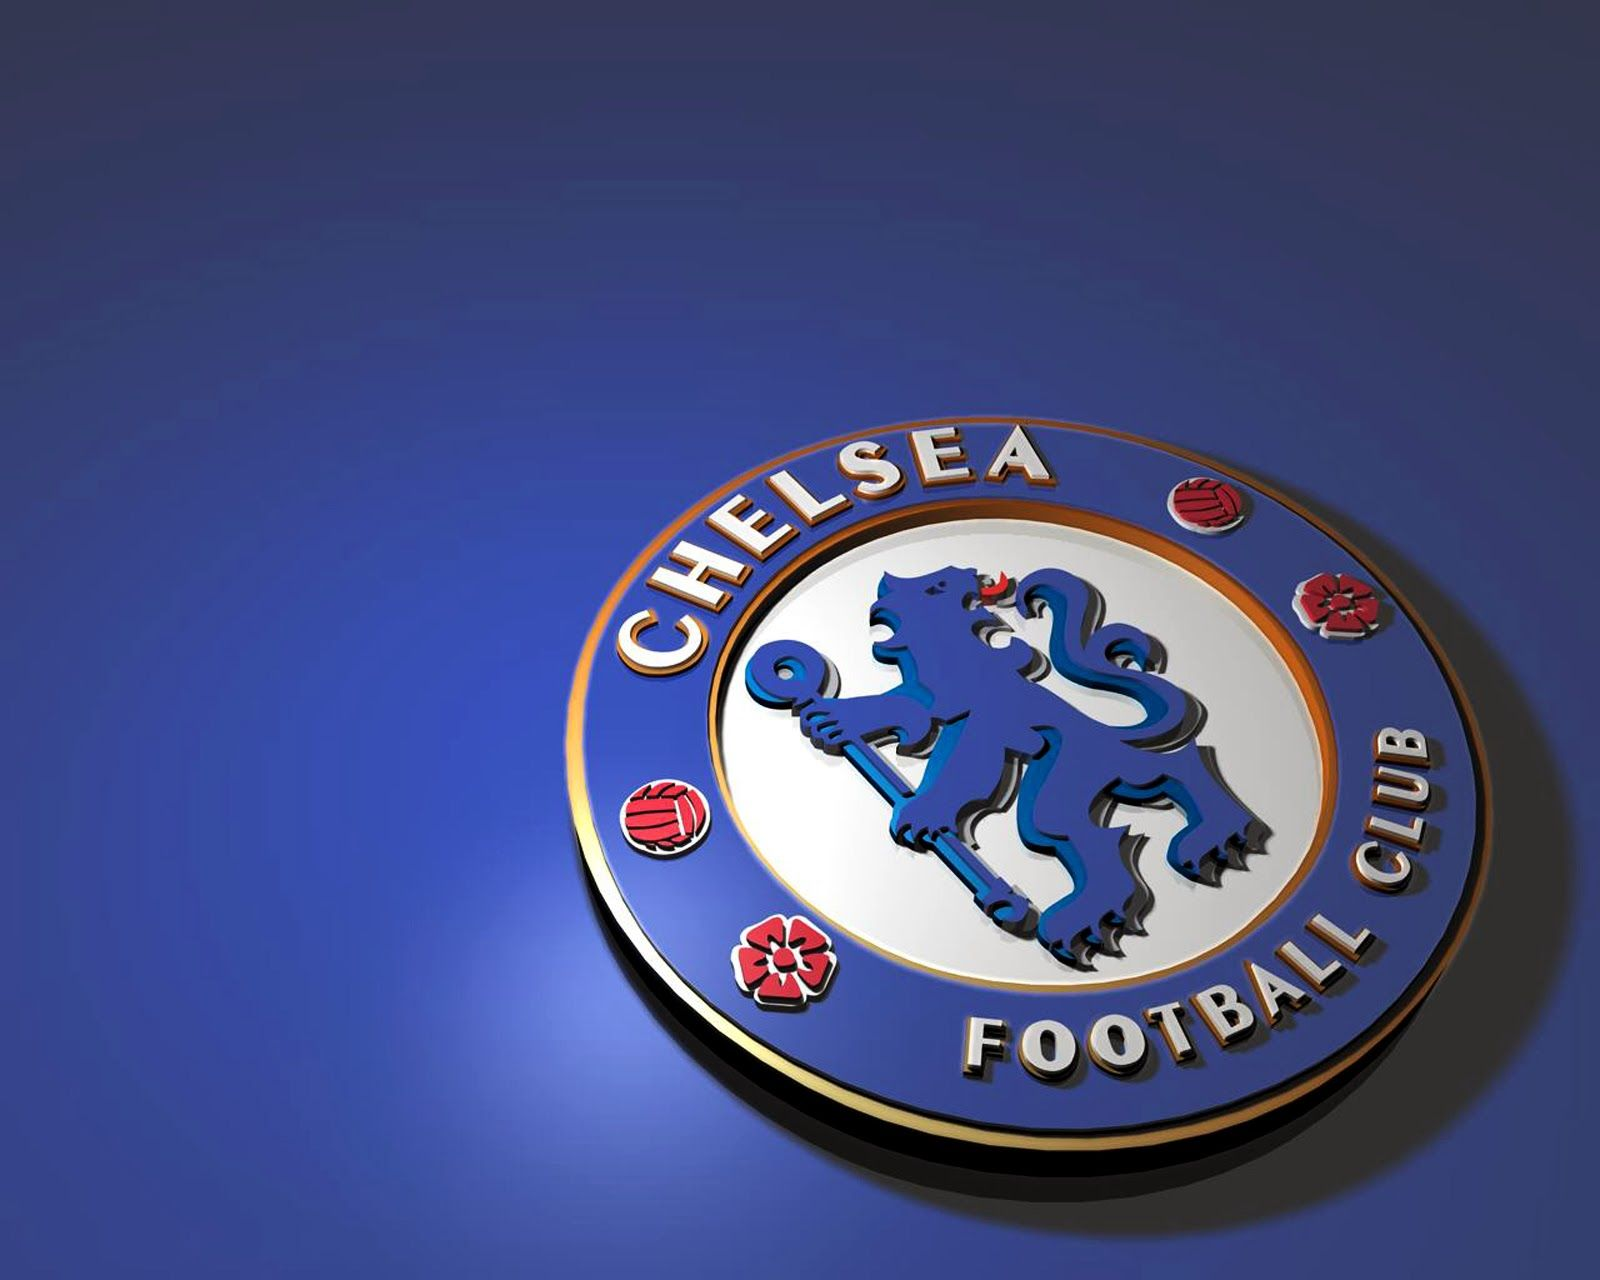 HD Chelsea FC Logo Wallpapers 1600x1280